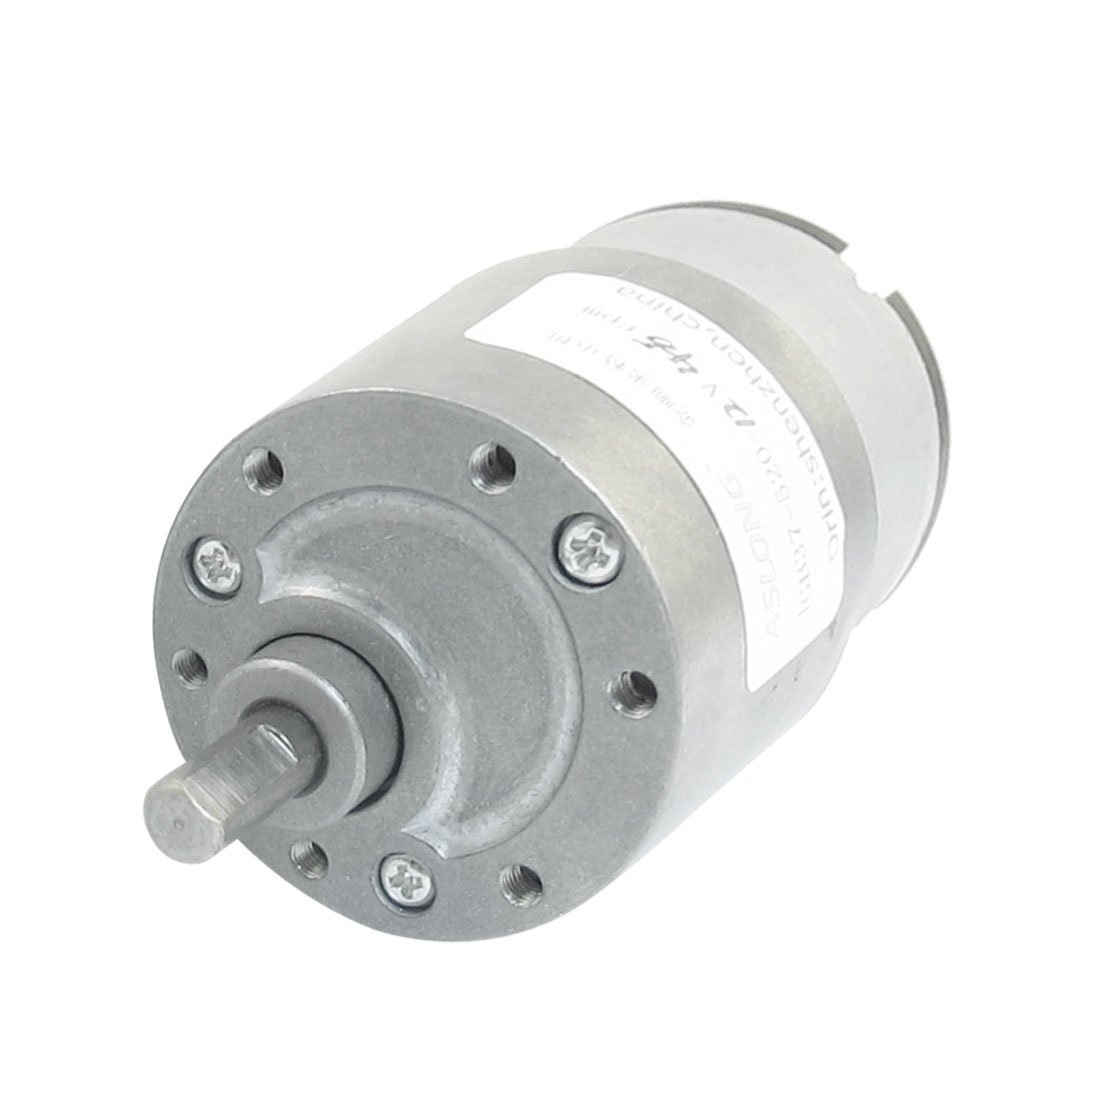 45RPM-DC-12V-High-Torque-Gear-Box-Electric-Speed-Reduce-Motor